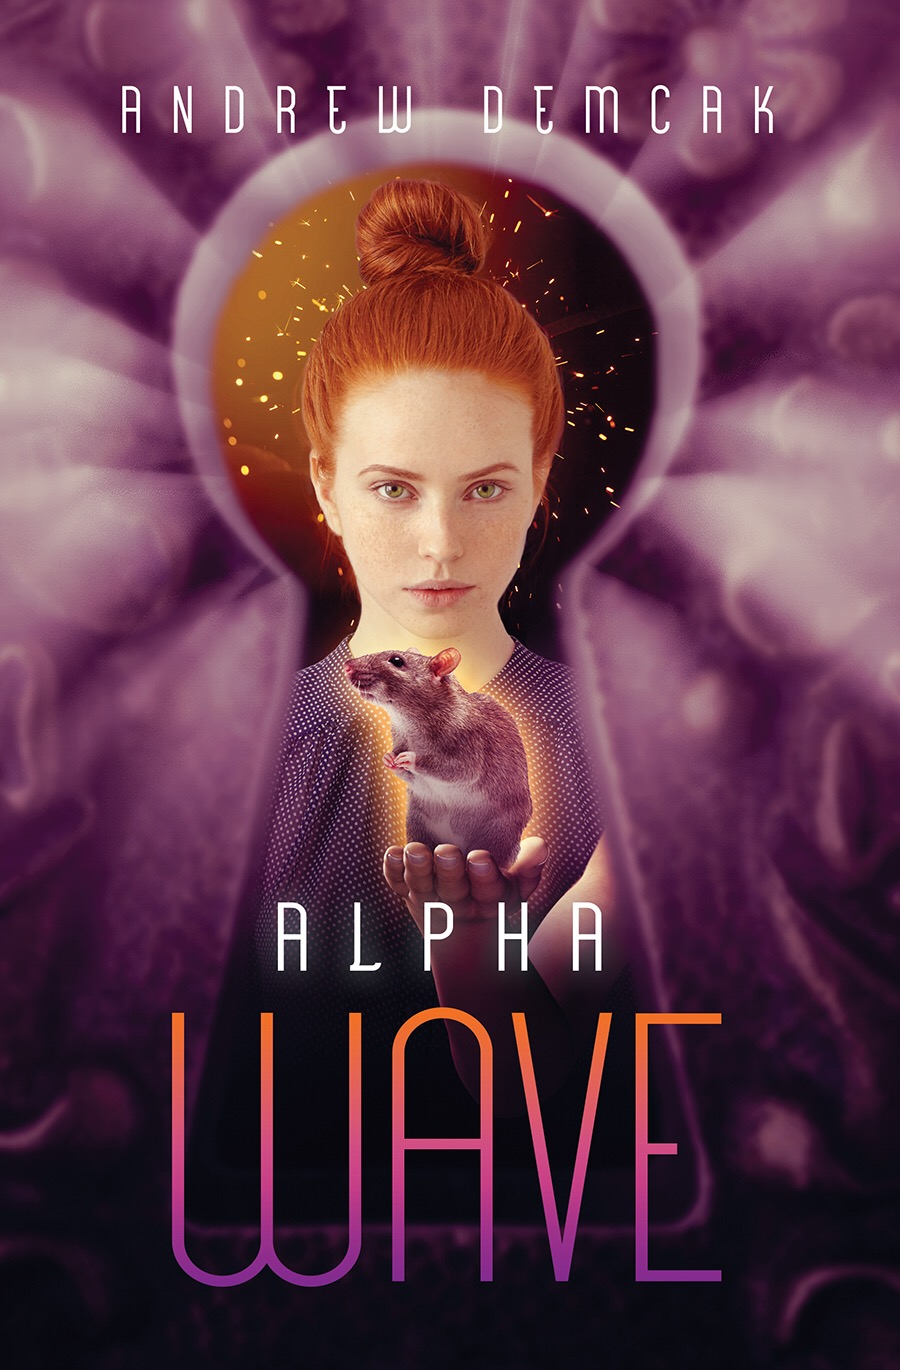 "ALPHA WAVE , May, 2018:       With so many hunting her for the power she possesses,  Kiera Fairchild  needs some allies of her own.  After escaping from both the Paragon Academy and a ring of slave traders, Kiera is searching for answers. Who is the mysterious alien being trying to contact her in her dreams, and why is he being held captive? Kiera learns she isn't alone.  James, Lumen, and Paul  are teens with powers like her own—and all of them are in danger. They've been sent by their alien father to look for  Kiera . The kidnapped alien needs their help, and the unscrupulous  Dr. Albion  has a plan to rob them of their powers and destroy them. In the battle that awaits them, standing together is their only chance.    The sequel to  A LITTLE BIT LANGSTON ,  ALPHA WAVE , will be arriving from Harmony Ink Press in Summer 2018.  Here is a sample of the first chapter:     1 .   Stop!  Keira tried to scream through the rubber gag, but no sound came out.  The three doctors surrounded her, each wearing a plastic facemask and a contamination suit. They reminded her of industrial robots .   Keira was strapped to a cold examination table, her wrists and ankles in metal restraints.   She turned her head from side to side, trying to get a glimpse of the operating room, but the blinding pool of surgical light cast such a small circumference. The rest of the room receded into total darkness. The first doctor stepped toward the table, a silver scalpel steadied in his right hand.   She could see the other doctors watching, unmoving, at the edge of the swallowing blackness. Another person stepped from behind them.   Someone is filming me. Now he's coming closer. I see my reflection in his shiny lens—but something's wrong. It's not my face; it's an alien's face—those huge dark eyes—that looks back at me. Who am I? Where am I?   Then the sharp blade entered Keira's arm above the elbow joint. A searing pain shot up her exposed bicep….   Sleeper, awake!      Keira Fairchild woke up in a blistering sweat, bewildered, her breathing labored, almost gasping. She turned, wiping her damp forehead, and looked out the dirt-streaked window at the green and red lights of the oil barges drifting slowly into San Pedro Harbor on the outskirts of Los Angeles. She looked at the clock, 3:15 a.m.  She opened the window a crack to let in the early-morning air. It was cool and calming. The metallic sounds of the distant buoy bells rang out from across the waters.  She wiped off her upper lip with the back of her hand and tried to forget the nightmare.   That's the third time this week. The same dream: I'm on the table and they're cutting me open with that knife. It's like I'm there, like it's really happening to me! But it's not me; I'm an alien in the dream. What does it mean? Totally weird!   Keira rolled over and turned on her lamp. From her bedside table, she picked up a smooth stone box with two golden suns etched on top. It fit neatly into the palm of her hand. She traced the outline of the blazing suns with her fingertip. Each was inlaid in real gold and had six flame points radiating outward. The stone box belonged to her birth mother; that's what the social workers told her. But none of them said if her mother, or her father for that matter, was alive or dead. Keira had entered the foster care system as a small child. Ever since she could remember, she'd carried the box everywhere with her. It comforted her and promised a connection to her real family, but it was as much a mystery. When Keira shook it, something inside rattled. But to this day, she hadn't figured out what it was; she still couldn't get the box to open. There were no seams or visible hinges, not even a keyhole. All she could get out of the stone box was the tantalizing sound. A sound she knew held the secret to her past and hopefully her parents.   Someday I'll figure out how to open this damn thing up. I'm going to find out who my real parents are, too, and then I'll go find them. Someday.   Keira put the box back down on the table and picked up her hairbrush. The natural fibers felt good against her scalp as it separated her shiny auburn strands and soothed her. After a few passes of the brush, she placed it back on the table, turned off the light, and went back to her fitful sleep.     ""Get up, lazy bones,"" Mary, Keira's 65-year-old foster mother, prodded her from her fetal curl beneath the checkered quilt. ""You've got to eat something before you go to school. I don't want to hear that you're not hungry again.""  ""Alright, I'm up.  Jesus ,"" Keira hissed back before turning over and pulling the warm bedding up over her head.  ""And don't take our Lord's name in vain.""  ""I wish, just once, you could manage a simple 'Good morning,'"" she said from beneath the quilt.  ""What?"" Mary asked, pausing in the doorway.  ""Nothing….""  Keira heard the bedroom door close. She pulled the covers down and opened her pale blue eyes into the burning stream of sunlight coming through the opened blinds.  ""God! That's bright.""  Keira pulled her feet out of the warm bed, onto the soft carpet, and then into her green felt slippers. She yawned and sat upright and rubbed a limp hand against her eyelids and cheeks. Keira looked down at her closely bitten nails. They looked awful, the skin underneath them red and cracking. Keira bit her nails to stubs.  She opened her right hand up and studied her palm. Lines laced themselves together across the space and formed what looked like a small triangle within a larger one. She traced one side of the shape.  This is my lifeline, I guess. Funny, there's a gap in it, like one life ends and then another begins.   Keira got up and unplugged the charging X-Phone she kept hidden under her mattress. It was a pre-ACPA ""burner"" that didn't run off of the government's grid. Since the Affordable Cell Phone Act passed the senate last year, every US citizen now had a data-enabled cell phone, and free government Wi-Fi covered the whole country. Most people saw this as a money saving opportunity and thanked the government. Keira saw it for what is was, a tracking device to spy on people.  She pressed her finger on the screen, unlocking the phone. Her secret email account unfolded. She was safe from federal data harvesters. All her info streamed through a channel hidden inside the government's own Wi-Fi traffic; it was beyond VPN, beyond encrypted.  What's better than hiding in plain sight?  She'd gotten the illegal phone off a Copperhead last year in exchange for an eighth of synth-pot.  There was nothing new in her inbox except a message from the Insemenoid fan club about another concert date.  I won't be going to see them anyway .  There aren't enough credits for that.  Keira closed the account with one swipe of her finger.  Just then the home screen flickered a little bit. A dark image appeared for a moment, a silhouette. The shape of a small person, like a child, wiggled in, blocking out the app icons. Keira stared down at the phone. As quickly as it had come on-screen, it squirmed off.   What the fuck? Is that some kind of malware? It's not like I can take this phone in and get it cleaned! I hope it goes away.  She tried to put it out of her mind.  Maybe it's a technical glitch. The phone must be getting ready to die. It keeps doing weird things lately.  Keira shut off the device.  Her illegal phone was one of the many things she kept hidden from both her foster parents, Mary and Steve. As far as caregivers went, they were strict and misguided with their attention. In the few months Keira had been with them, both were more concerned about whether Keira was smoking synth-pot than if she were happy or not.  She'd been shuffled through the system mainly because of her faulty datachip. Hers never seemed to work properly. All Protective Care children had a government ID chip implanted in the back of their left wrists. It was easier for processing and placement. When she turned eighteen, it would be removed and she'd be issued the standard government adult ID wristband. The chip had been replaced four painful times already, but within a week or so, it would transform from active biosilicate into a static piece of plastic cartilage. Dead and useless. No one knew why.  Keira lifted her black robe from the chair back, slipped it on, and left her room for the hall bathroom. After she locked the bathroom door, she let the robe drop to the floor and she turned on the water in the teal shower. She pulled off her nightshirt and panties and hopped into the warm stream. As the water ran down her white back, Keira wondered when she would get her period again; her cycles were wildly irregular. She hadn't had it for over three months and she certainly wasn't pregnant.  Keira was still a virgin in spite of herself. Mary saw to that.     ""I smelled cigarette smoke on your jacket yesterday. You know we don't approve of that,"" Mary said as Keira, dressed in tight black jeans and a black t-shirt, sauntered into the kitchen.  ""I'm not smoking. If you even set one foot into the girl's bathroom at school, you get covered in smoke,"" Keira said as she placed her black leather shoulder bag on the kitchen table. ""All the seniors are smokers.""  ""Just as long as you don't start. You're fifteen; it's really bad for you.""  Keira wouldn't dignify Mary's last statement with a response. Instead she grabbed the  LA Times  from the counter and glanced at the headlines.  ""That huge earthquake in Indonesia looks terrible. Those poor people.""  ""It's God's way, Keira.""  ""But why would he do that?""  ""He punishes the wicked and the unbelievers. That's a country full of heathens.""  ""But it doesn't make any sense.""  ""It's all part of his plan, Keira.""  Keira knew she was entering dangerous territory. This was not a conversation she should be having with her foster mother. She'd learned early on to hide her real beliefs and to mimic the ones of her caretakers. Developing a ""false self"" was a survival skill, plain and simple. Maybe if she agreed with them, she wouldn't be abandoned again. Maybe she could stay with this family, and they would learn to love and value her. Even if they were loving the part of her that was a complete lie. She'd take what she could get. Love was love.  ""I know it's his plan. It's sad when so many people die at one time.""  ""He moves in mysterious ways.""  Keira put down the newspaper, grabbed her purse, and headed out of the kitchen toward the front door. ""See you after school,"" Keira said.  ""Aren't you going to eat anything?""  ""Not hungry.""  ""But you've got to eat  something . You're too skinny, Keira.""  ""I'll eat at school,"" Keira lied as she turned to leave. ""Bye!""  ""I worry that you're going to become anorexic,"" Mary said.  ""I'm not hungry. See you later.""  As soon as Keira was down the block, out of Mary's eyesight, she produced a red pack of Marlboros, shook one out, held it between her full lips, and lit it.  Cigarettes are food , she thought to herself. She walked the rest of the way to San Pedro High School trailing smoke like a long gray scarf.     ""Is this the way to the Vincent Thomas Bridge?"" Holcomb asked, pointing out of the front window of his car.  Keira looked over at the white man in a BMW, cruising alongside her.  Nice car, weird guy . The shiny coupe slowed down and pulled over to the curb. Keira was still surprised by all the male attention she'd been receiving in the last year. At fourteen she'd been just another teenager, but a year later when her breasts came, the guys were suddenly very interested.  ""What?"" Keira asked as she tilted her head and glanced at the stranger.  ""Is the bridge up ahead? I'm lost.""  ""You're going the wrong way,"" Keira said while dropping her cigarette on the sidewalk and crushing it beneath her heel. Keira quickened her pace.  ""Do you know which way it is?""  ""I'm late for school. Sorry,"" Keira said and then turned right, past the chain link fence, and walked onto the busy campus. She could feel the stranger's eyes on her still, burning two holes into her back.  Holcomb brought the car to a stop and parked. He watched Keira disappear into the colorful huddle of high schoolers. An alert beeped up at him from his phone.  Proximity alert: ID chip identified, Keira Fairchild.  ""I know,"" Holcomb said to the phone and deleted the message.  Target acquired, he typed into the message field and hit Send.   I hope I've found her before Paragon , he thought.     ""Class, today we'll be studying the details of the rodent digestive system. That means we'll be vivissecting live rats. Those of you who've opted out of this assignment with your parents' signatures can report to study hall right now,"" Mr. Hines announced at the beginning of fourth period Life Science. ""I don't want any fussing. Any student without a parent's signature must complete this assignment, or be dipped in a vat fluoroantimonic acid.""  ""Dipped in what?"" a nearby student asked.  ""Fluoroantimonic acid; it's a new superacid, thirty times stronger than sulfuric,"" Mr. Hines continued.  The few conscientious objectors—a perky cheerleader, a young Sikh, a weedy nerd, and a Jehovah's Witness—left in a small exodus. Keira perched on a hard stool at her lab table with her freckled, brunette partner, Lissa, her only friend at San Pedro High. Neither of her foster parents had ever asked if she had made any friends, and Keira wasn't about to tell them, either.  On the solid plastic tabletop sat one large, empty Plexiglas jar and accompanying metal screw-top lid with a tiny hole in the middle, a tray of silver dissection knives, two pairs of thick leather gardening gloves, and a wax-lined dissection tray with skin-holding pins. There was also one huge, black rat in a tiny wire cage.  ""I'll be coming to each table with a cotton ball soaked in ether,"" Mr. Hines said as he began to walk around the classroom. ""Listen carefully, people. Put the cotton ball in the glass jar, put the rat inside the jar, and seal the jar with the metal lid. Let the rat stay in there for about three minutes. This should knock the rat completely unconscious. I want you to see the living digestive system functioning, not in an autopsied dead specimen. Don't worry, the rat won't feel a thing. It's important you follow all these directions. Let me know if you need help.""  ""OK, here goes!"" Keira said to Lissa as she slipped on the leather gloves.  ""Do you want me to open the cage?"" Lissa asked.  ""Yeah, sort of dump the rat onto my gloves and I'll shove it in the jar.""  Lissa picked up the wire cage and pulled the latch, sliding the front panel open. The rat sniffed around outside of the opening.  ""Now drop it into my hands.""  The black rat slid into Keira's waiting grip. She grabbed it firmly with her right hand. The rat reflexively turned and bit down on Keira's index finger; its sharp teeth piercing through the leather glove. The pain rushed up her arm. But before she could react, a shower of white sparks began snapping in the air, cracking and popping loudly, all around the rat. It gave out one high-pitched shriek as its greasy body tensed up in agony and then went completely limp.  The whole room was suddenly silent. All eyes were on Keira. She let the dead rat fall to the table. It landed like a beanbag, as if the rat's internal organs had been turned into sand. Keira pulled off her gloves and examined the fresh bite on her finger. The blood was already gathering in the wound.  ""What happened?"" Lissa gasped.  ""I don't know,"" Keira said as she looked around the classroom.  ""It must have been a discharge of static electricity from the air,"" Mr. Hines said as he quickly approached the workstation. ""You saw the electric sparks. It's puzzling, though, because these work surfaces are supposed to be inert and free from static build-up. But that's what killed the rat."" Mr. Hines turned to face the class, ""Show's over. Everyone back to work. I'm bringing the ether around now.""  ""What should we do, Mr. Hines?""  ""Keira, go to the storeroom and get another rat for you two,"" he said. ""They're a few more on the shelf in the back. Then go see the school nurse about that finger. It doesn't look too bad, though. I'll put this rat in the dumpster."" Mr. Hines walked away with the departed test subject.  Keira looked at Lissa. They were both stunned. ""That was too weird!"" Keira said as she applied a paper towel to her finger, staunching the flow of blood.  ""But it was cool!"" Lissa said, excited by the strange event.  ""How did it happen, though? It was so random!"" Keira asked as she looked over at her lab partner.  ""He said static electricity.""  ""It was so  bizarro . You can still smell it in the air.""  The two girls paused to breathe in the acrid scent of ozone. Keira's head was spinning a little bit from the strange experience. It felt like she was floating, like her mind had been set adrift to an unknown location.  ""But what should we do now?""  ""You heard him, killer!"" Lissa giggled. ""Go get another victim!""  ""That's not funny, Lissa.""  ""Sure, it is.""  Keira strolled to the metal door at the back of the classroom, the equipment storeroom. She opened it slowly and went in. The single light bulb cast harsh shadows in the dark, single-windowed room. Keira heard the rats scurrying around before she saw where they were. She approached the wire cages positioned in neat rows on the far wall. She dropped the bloody paper towel onto the floor. The rats, seven in all, stared helplessly up at her. She looked back at them. It was as if in that moment she was seeing a caged animal for the first time in her life. She suddenly felt the suffering of these creatures. It was too cruel.   I know how you feel, Little Rat , Keira thought as she approached the first cage.  Passed around from place to place. And now this—your death- you have no control over.   Keira stood on her tiptoes and unlatched the narrow storeroom window and, with one hard shove, pushed it all the way open. One by one, she lifted and unlatched the first six cages and released the squirming rats into the sprawling juniper bushes on the ground outside.  Keira carried the last brown rat in its mesh cage into the lab, and walked over to the workstation to retrieve her books and purse.  ""See you later at your place,"" she said to Lissa, who nodded.  ""I've got a surprise for you,"" Lissa added.  Keira smiled and kept on going, strolling leisurely right out of the classroom and onto the campus below, not looking back even once.     Asmodeus had his orders from Dr. Albion. He bent his six-foot-five frame over the rusty green dumpster behind the Life Science classroom. He fished through the collected debris. The Paragon Institute had received an email earlier that something unusual had happened to a girl named Keira Fairchild at San Pedro High School.  He lifted the flattened cardboard boxes and soggy newspapers, pushing them aside and looking underneath. He hated getting his hands dirty; he was still adjusting to being flesh.  Stinking mortal flesh . Asmodeus looked at his pale fingers and the backs of his hands; they were covered with thin black lines, like his pasty face and the rest of his body. Lines ran everywhere, intersecting and crisscrossing. They marked his skin like an incision diagram.  Asmodeus wished he didn't have the US Government's blood oath hanging over him. It was part of the conjuring. If only he could use his infernal powers to sort through all this rubbish, it would be easy. But a contract was a contract; it specified where and when he could use his dark gifts. It actually blocked his power from unwarranted use. That part was decided at his recent summoning by General Hesslop and Dr. Albion. Paragon knew how to control its newest employees, The Four Demons. Only after the contract was fulfilled would Asmodeus be released and receive his substantial reward.  He continued to search for the undeniable proof that this girl, Keira, was another of the missing Star Children they were looking for, one of the Twelve Heroes. Asmodeus adjusted his dark fedora; it covered his two short ivory horns.  Then he caught sight of the furry body of a rat.  There it is . He removed the flaccid corpse, slipped it into a plastic evidence bag, and pinched its lifeless form.  Sand, its insides feel like sand , Asmodeus thought as he slid it into his trench coat pocket.  She can cause crystallization of living matter. Interesting. I wonder what else she can do? And what's this?  He paused and sniffed the air, picking up appetizing scent. Asmodeus smiled fiendishly.  This girl is a virgin. That changes everything. I will have to ask for her as part of my price when I'm done. I can't believe my luck. A human blood sacrifice will increase my power ten-fold.   ""OK, Song Bird. Item is secured and in transit,"" he breathed into the microphone on his shirt collar.  Something tapped Asmodeus's shoulder. He turned to see a campus security officer standing directly in front of him. He'd been so carried away with the scent of a human virgin, he'd forgotten to check his surroundings. But no matter. Asmodeus could use whatever power he wished in this particular situation. That  was  part of the contract.  ""What?"" he asked, annoyed.  The guard stared at the strange person for a moment. He'd never seen someone with such bizarre tattoos, especially across the face. ""This is a closed campus. I didn't see you sign in at the office.""  ""My daughter lost her purse this morning and I was looking to see if it got thrown in here by accident,"" he said, indicating the filthy dumpster.  ""Who is you daughter, sir?"" the guard asked as he closely watched the movements of the stranger.  ""Keira Fairchild.""  ""And where is she now?""  ""In class, of course,"" Asmodeus said smoothly.  ""I'll need to scan your ID, sir.""  ""Certainly, certainly,"" Asmodeus replied, suddenly very cooperative as he extended the ID band on his left wrist toward the guard's black scanner. He passed it beneath the red laser beam.  ""No record,"" the guard said. ""Let me try again.""  Asmodeus held his wrist closer to the blinking scanner.  ""Have you been x-rayed or passed through radiation that you know of?"" the guard asked, puzzled.  ""No.""  ""Weird. I'm not accessing your information. You better come with me to the front office. This scanner is acting up.""   This has gone too far , Asmodeus thought. He stared into the guard's brown eyes. A psychic tremor started behind Asmodeus's furrowed brow. The mental hooks came out. Little probing thoughts Asmodeus pushed invisibly, one by one, into the guard's mind as if slipping fingers through the slats of a wooden fence. They attached themselves and fed freely on the guard's brain impulses, sucking at his life energy. Asmodeus felt his own power surge with a heady rush. It was completely intoxicating. He was in total control.  ""You don't need to do that, Luis,"" Asmodeus said, his eyes burning bright red. ""You are going to forget that you saw me here. You will go back to your post and leave me alone.""  Without another word, Luis, who was suddenly so tired he nearly collapsed, turned and walked heavily back up campus. Asmodeus exited through the parking lot to deliver the crucial evidence, the tangy scent of a virgin female still in his nostrils.     ""Rats are disease carriers!"" Steve shouted at her as she sat on her unmade bed. ""You can't keep one in this house!""  ""But he's my responsibility. It's part of a science project. I have to take care of him or I'll fail,"" Keira answered.  ""I'm going to call the school. This is unbelievable. A disease-carrying rat in our home? No way!""  ""Why don't you believe me?"" Keira glanced up at her foster father, a look of distrust and anger on her face.  ""I'm not going to respond to that. You've been more trouble to us than what you're worth these last couple of weeks.""  ""Than what I'm  worth ?"" Keira asked incredulously.  ""The two grand per month Child Protective Services pays us,"" her foster father said without any emotion.  ""Is that all I am to you—a paycheck?"" Keira asked, wide-eyed with disbelief at her seventy-year-old foster father.  Steve looked at his charge and said nothing.  ""Go ahead and call the school,"" she shouted. ""See if I care.""  ""You watch that attitude, young lady,"" Steve warned. With that, he glared at her one more time, shook his head, and left the bedroom.  Keira leaned over to look at the rat waiting in the cage on her bedside table. He stared up at her. He poked his pink nose between the wires and sniffed, his black whiskers pointing forward. She put her index finger near for him to smell it, but not close enough to be bitten.  ""Don't worry, little guy, if he kicks you out, I'm leaving too,"" Keira said. ""See over there in the back of the closet, that green bag? It's my Emergency Exit bag. I've run away from foster homes so many times; I always keep it ready. It might be that time again. We'll see. I think it's time that I really try to find my birth parents anyway.""  Keira took her phone from her pocket. It had been heating up.  Maybe that weird animated malware is making it overheat?  She placed it next to the cage and looked down the hallway to see where Steve had gone. He wasn't in the sunlit kitchen at the far end of the house.  He's probably talking to Mary. Oh, well. I was starting to get used to this place.   Keira walked over the closet and pulled the green bag out.  I'm supposed to be going to Lissa's tonight anyway. I'll say I'm going to the library again, like I usually do. They always believe that one for some reason.   I'll leave from Lissa's .  Maybe I'll go up north. Portland or Seattle both sound like fun.   While Keira carefully repacked the contents of her bag, a tiny shadow moved across her phone screen. It had a head, shoulders, arms with moving hands, and a trunk with legs and feet attached. The dark figure wiggled on the reflective surface. It twisted its limbs around the frame's edge as if it were trying to pull itself out. And then it rose up from the phone in a puff of black mist. It shimmered and snaked across the table and headed straight toward the caged rodent. In one swift motion, the dark form engulfed the brown rat and then disappeared down into its fur. The rat trembled, its eyes dilating wildly, and then it rolled unconscious onto its right side. It remained motionless for a few moments. The rat's heart slowed down and finally stopped. As quickly as death had come, life returned to the slack body. The rat's heart fluttered awake. The reanimated animal stood up on all four feet. It squeaked and scurried quickly around the cage, trying out its legs for the first time. Keira turned to look.  ""Was that you?"" she asked gently. ""Is something wrong?""  The rat continued to fuss in the cage. Steve returned to Keira's room. He looked angry.  ""Your science teacher, Mr. Hines, wants his rats back.""  ""What do you mean?"" Keira asked as she pulled the bag over next to her and tucked it behind her legs. She was ready for a fight.  Steve stared blankly at Keira. ""This is the sort of behavior that will get you a one-way ticket to reform school,"" he said and stepped closer to her.  ""I don't know what Mr. Hines is talking about.""  ""Stop this, Keira. It's time to admit your mistake and return the school's property,"" Steve said as he reached past Keira and tried to grab the cage.  ""No! He's mine. There's been a mistake,"" Keira shouted and stopped Steve by grabbing his right arm firmly at the wrist.  ""Let go of me,"" he growled at her.  ""I won't let you take him.""  ""This is my house and my rules. The rat is going."" Steve tried to pull away from Keira's grip.  ""No!""  ""Keira, let go of me!"" Steve shouted and pushed her with his free hand.  As Keira began to fall backward onto the bed, a shower of white sparks snapped around the hand she clenched tightly to Steve's arm. There was brilliant flash and his shirtsleeve evaporated in a cloud of white smoke. Beneath her hand, Steve's exposed arm swelled bloodred, and then, cell by cell, the soft flesh became solid marble. Keira released her grip. The unexpectedly heavy limb tore itself free from Steve's shoulder joint, leaving a gaping hole. It dropped to the wooden floor and shattered. Steve's eyes rolled back into his head and his legs gave out beneath him.  Keira screamed. Her foster dad flopped around in front of her like a fish out of water. Blood began to pool from his open shoulder socket. She grabbed her phone, charger, and her twin sun box, then jammed them into her pockets. Green bag under her right arm and rat cage beneath her left, she ran from her bedroom, through the empty living room, and into the small backyard.   Where's Mary?  she thought, quickly looking around.  I've got to get out of here before someone sees me!  She paused to open the gate next to the garage, looked around again, and then hurried down the block. She put her head down and sprinted all the way to Lissa's condo half a mile away.            PAGE \# ""'Page: '#' 